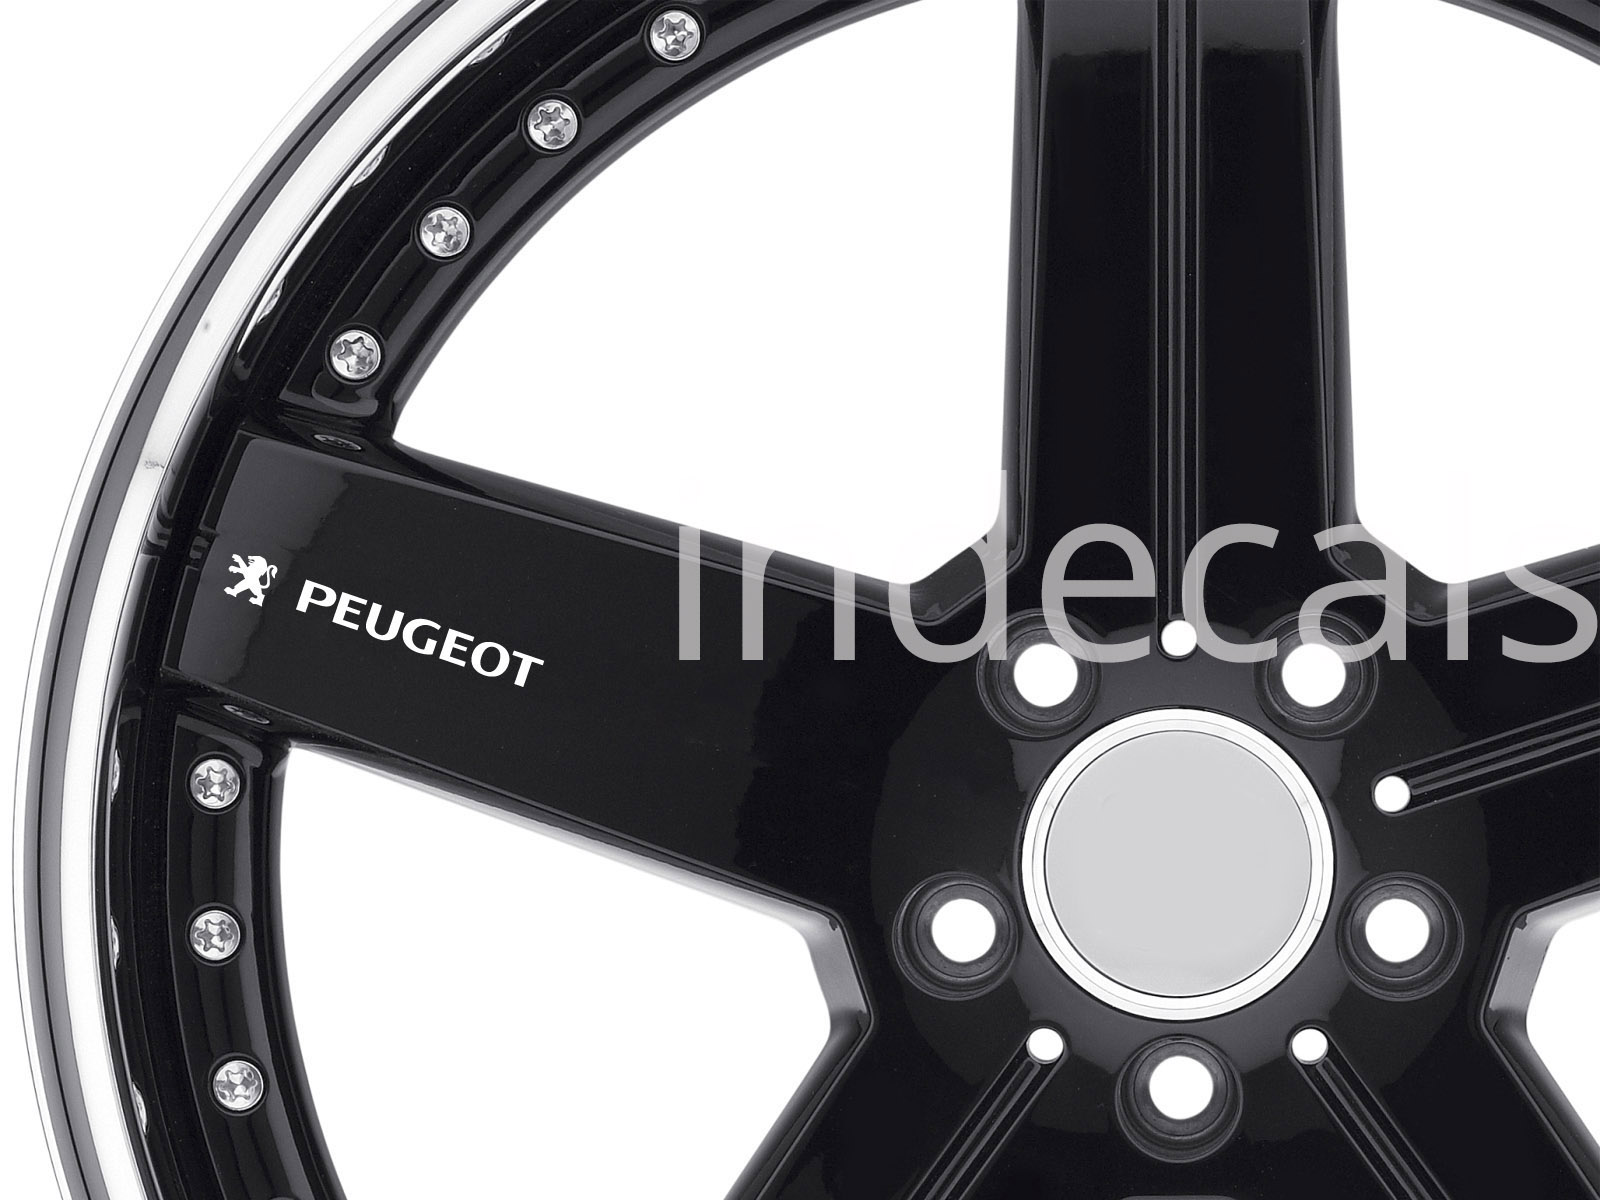 6 x Peugeot Stickers for Wheels - White